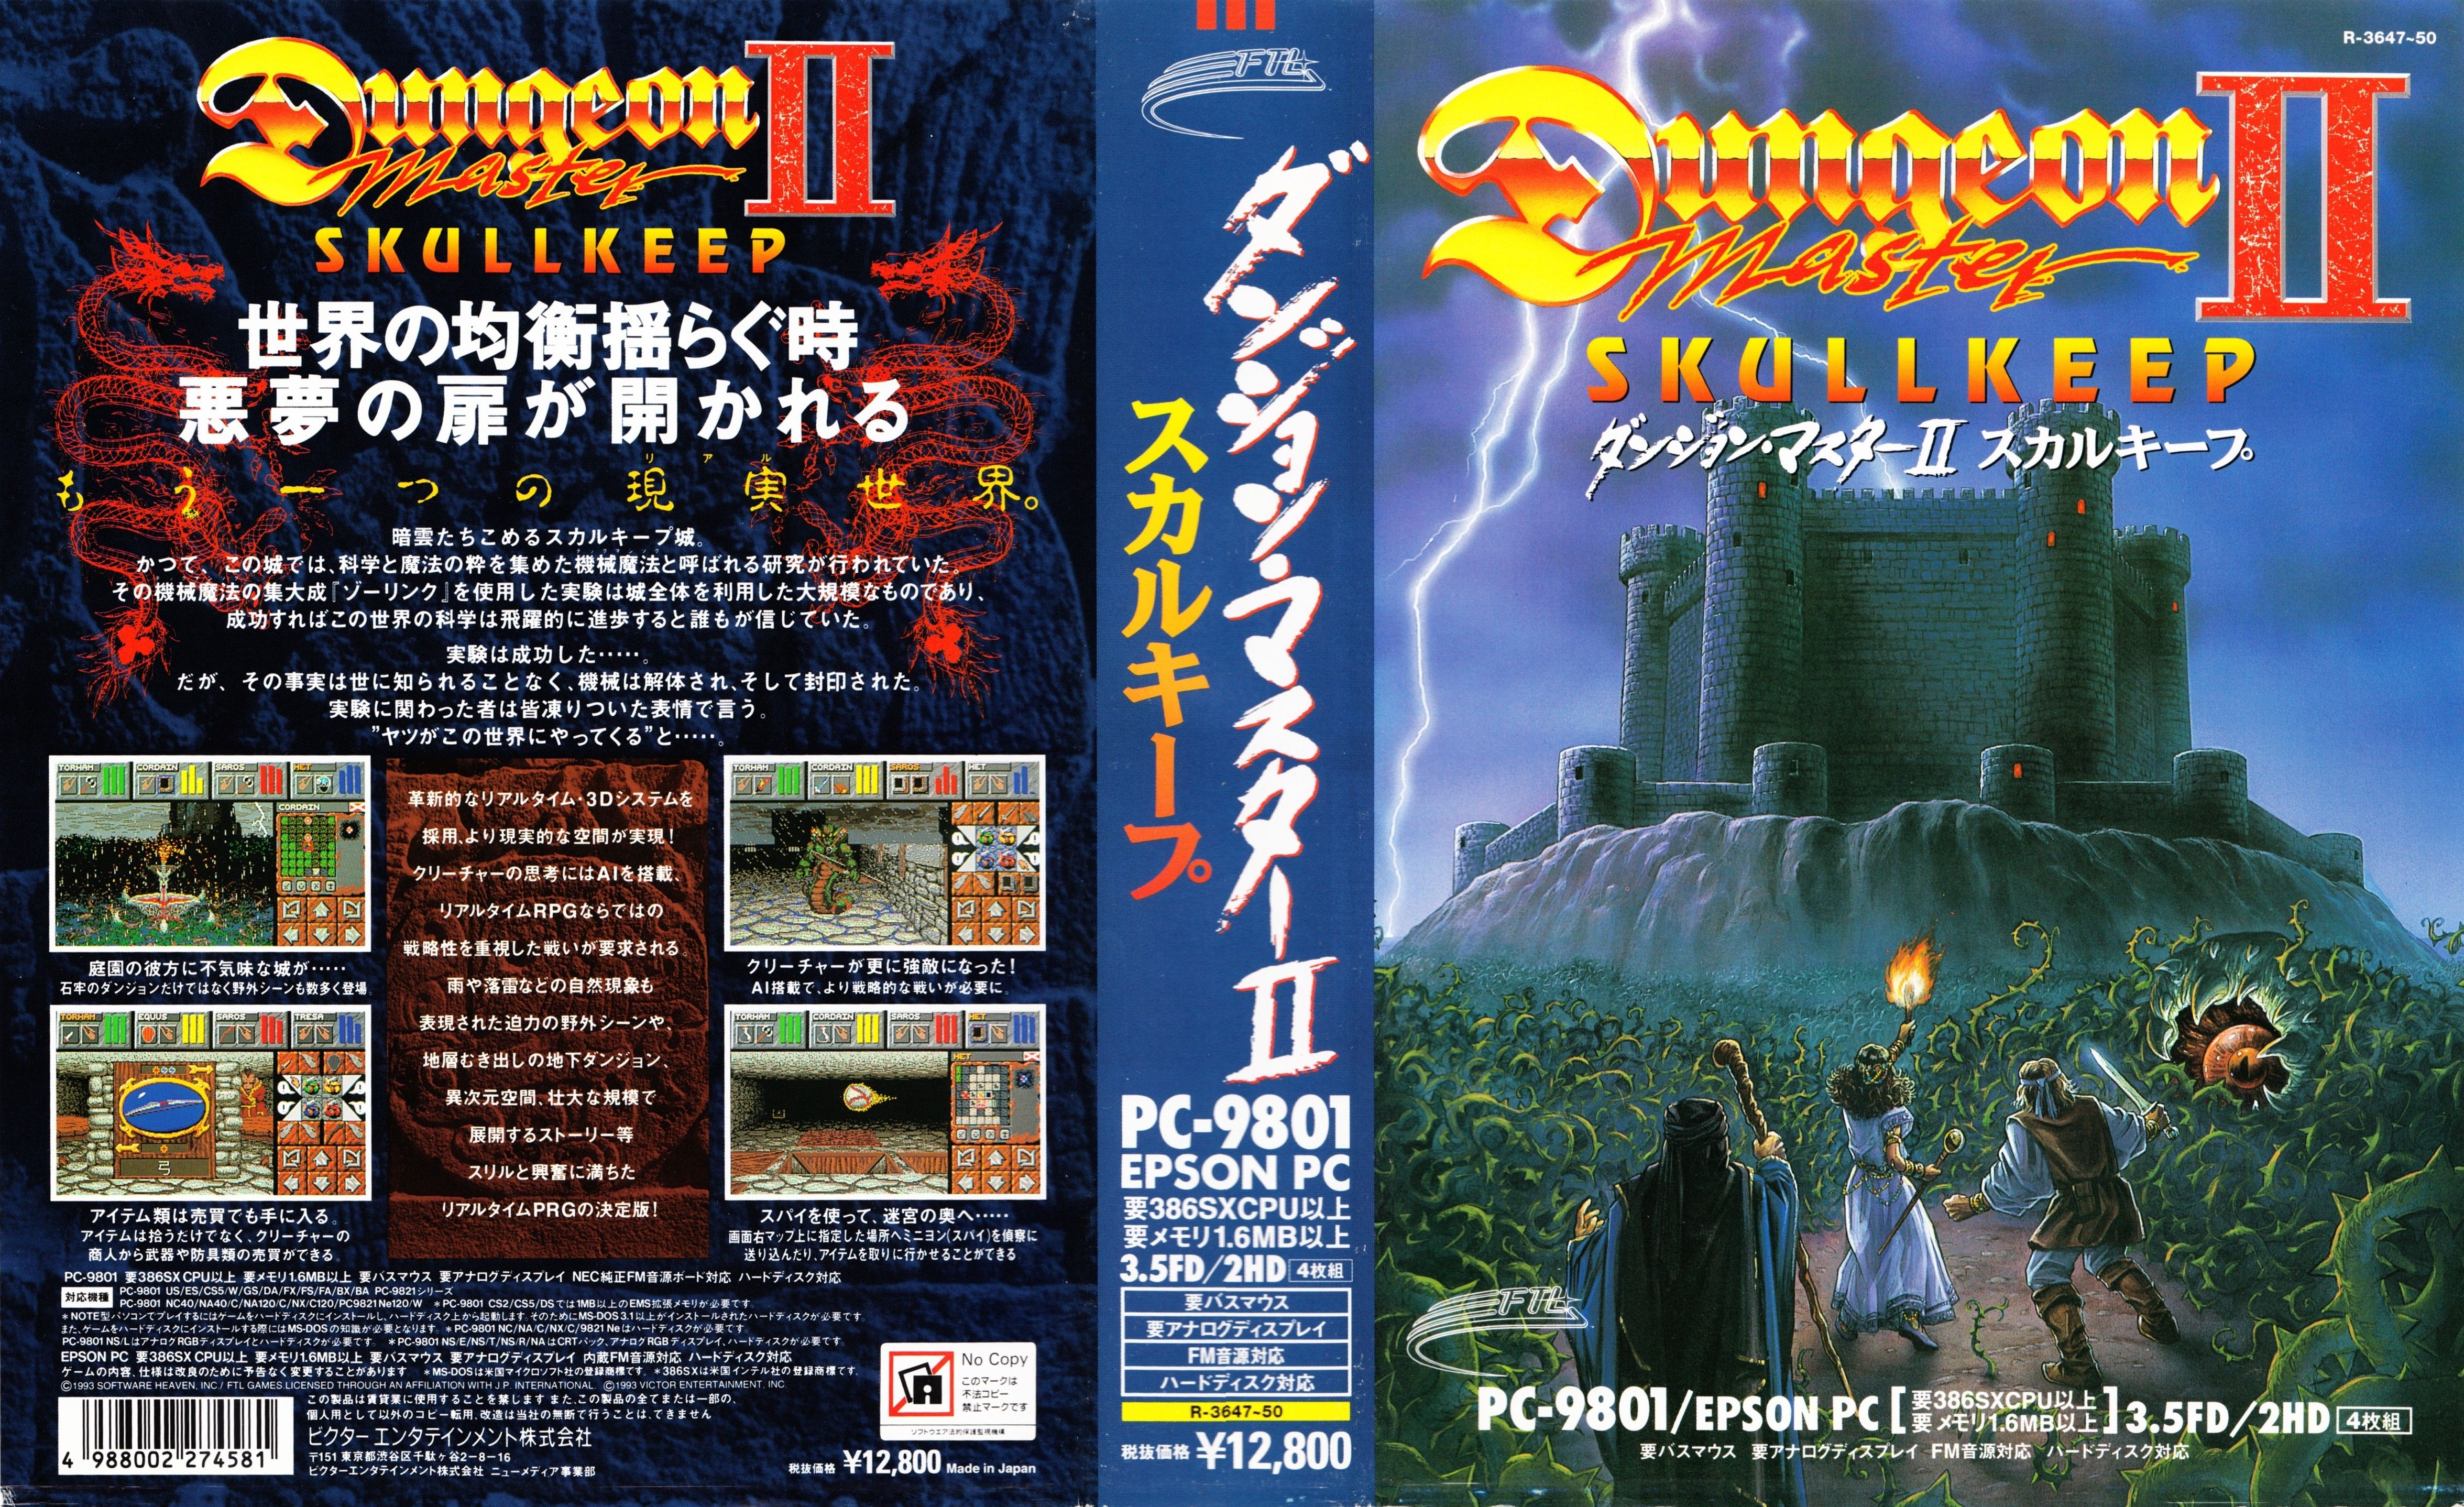 Game - Dungeon Master II - JP - PC-9801 - 3.5-inch - Cover - Front - Scan